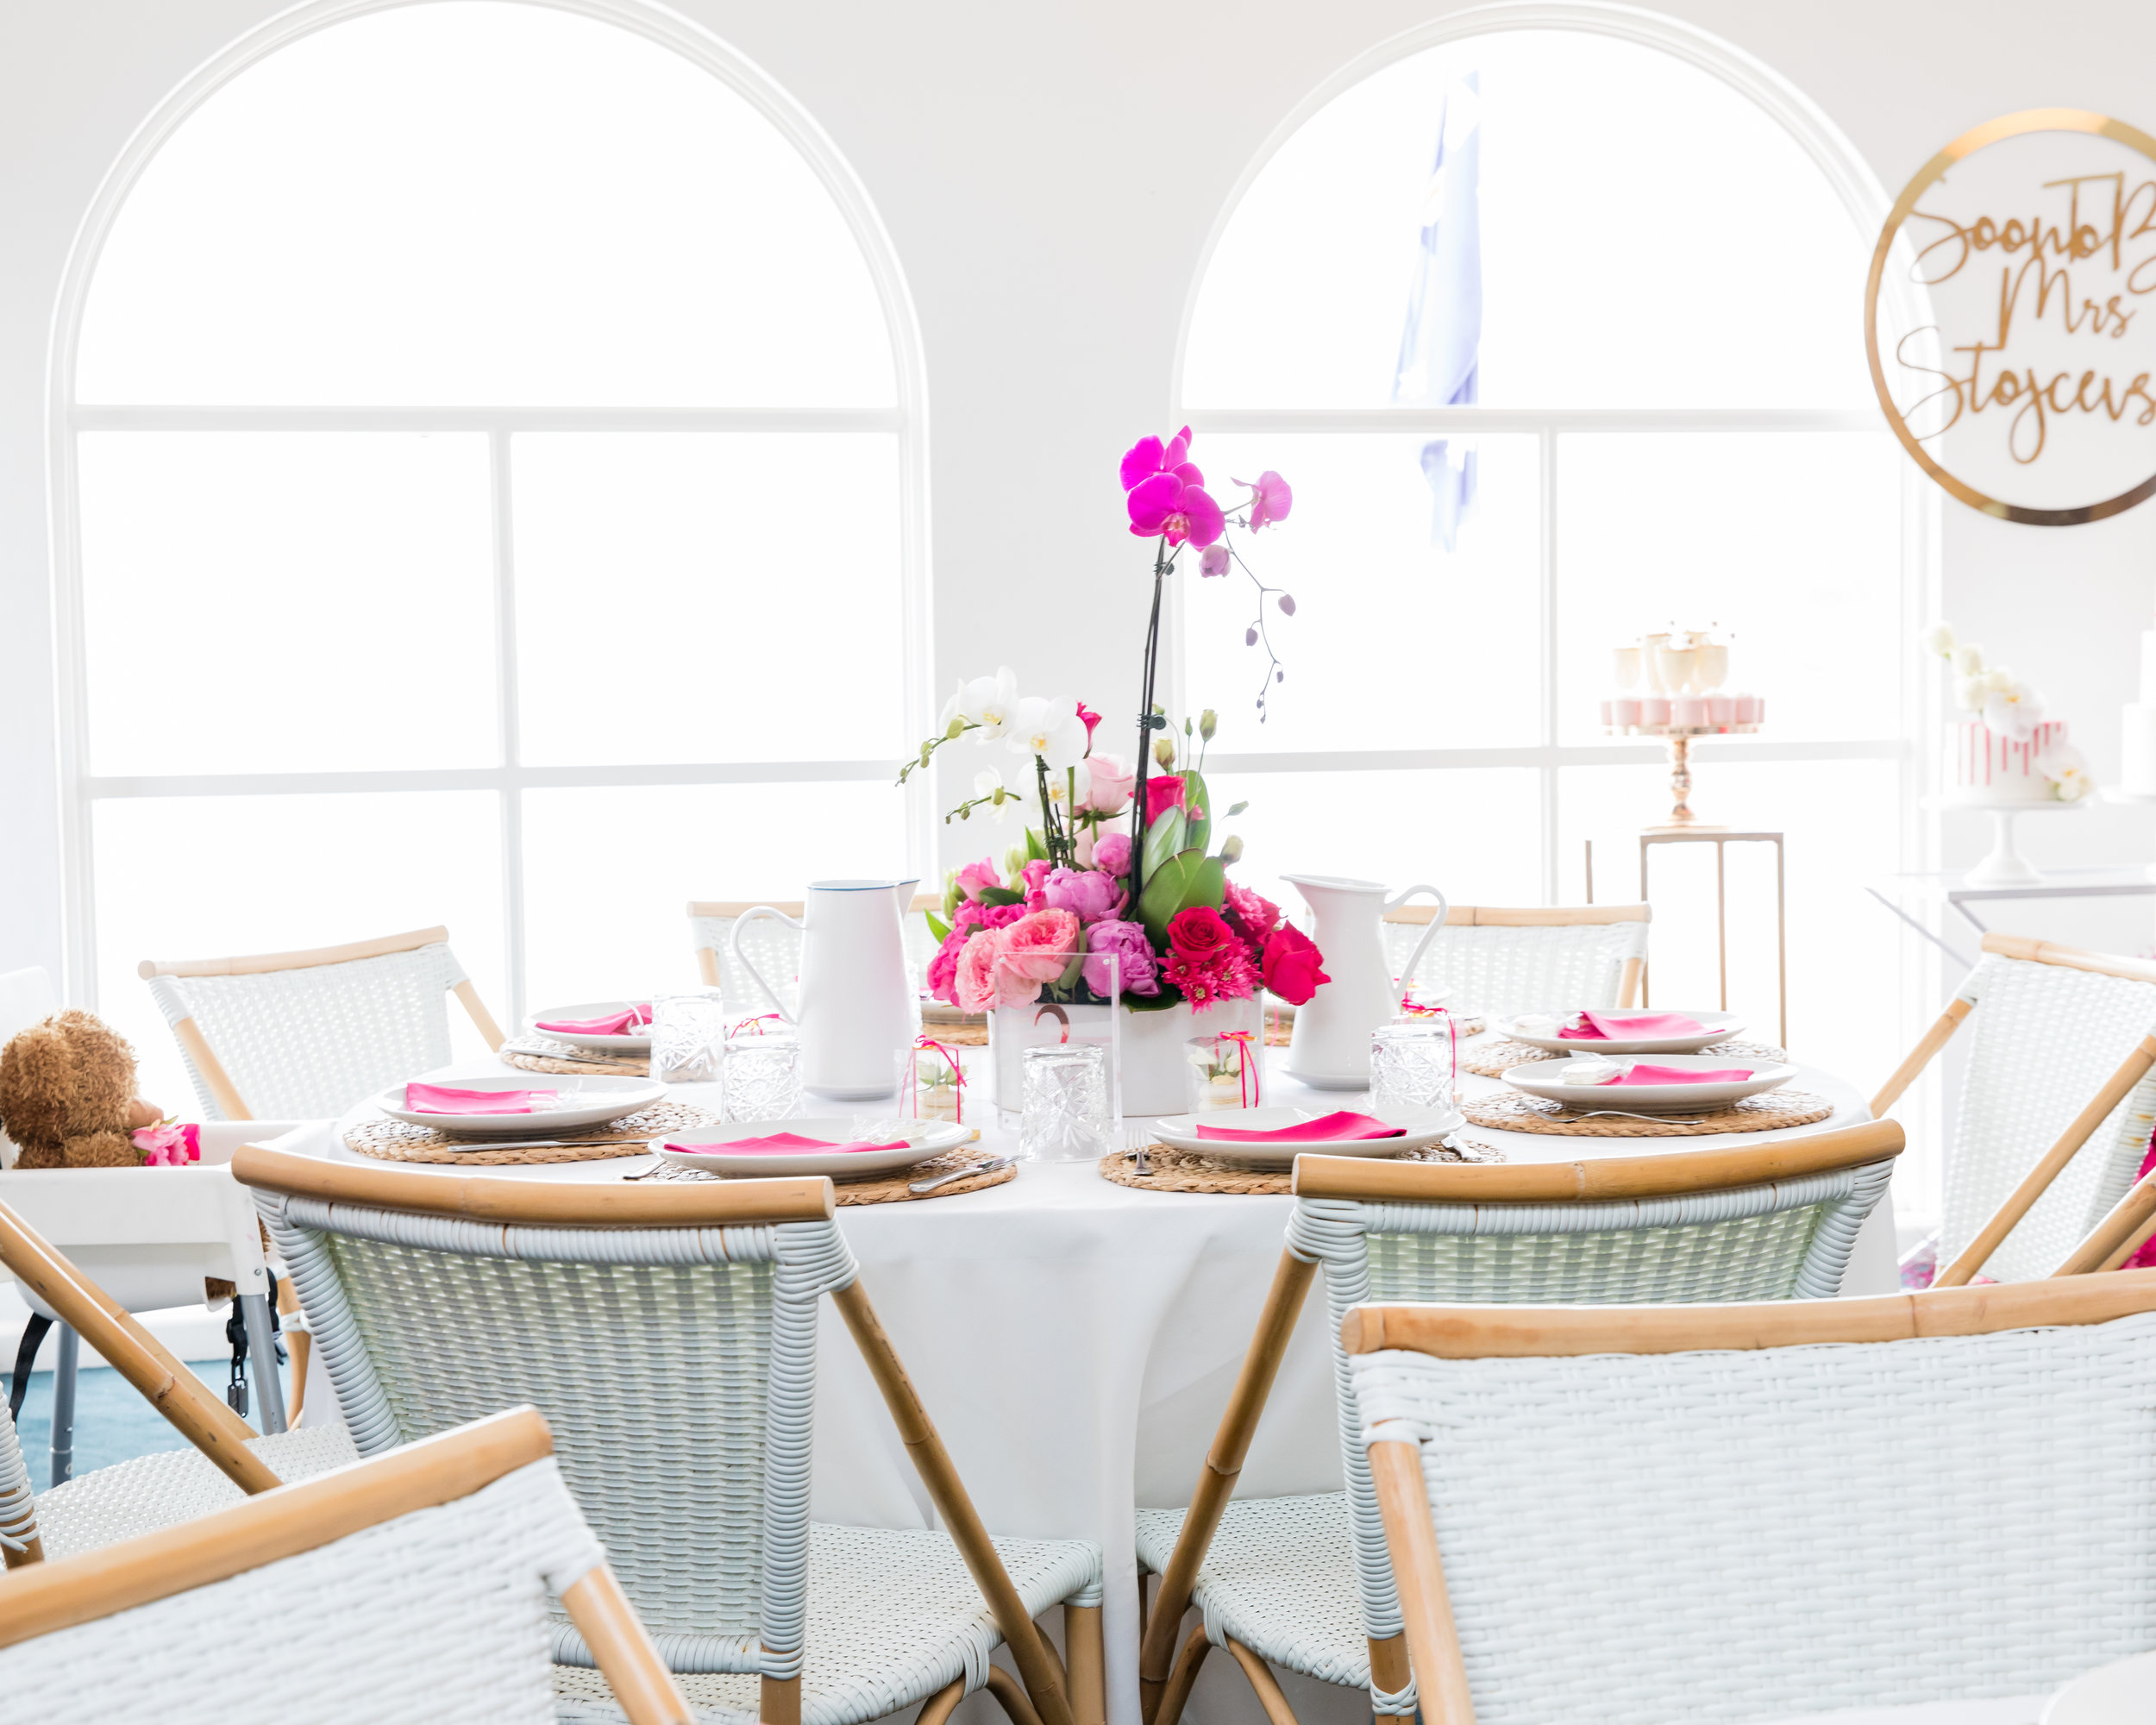 kitchen_tea_styling_white_pink_styling_floral_centrepiece_blue_room_bondi_events_by_nadia_2.jpg